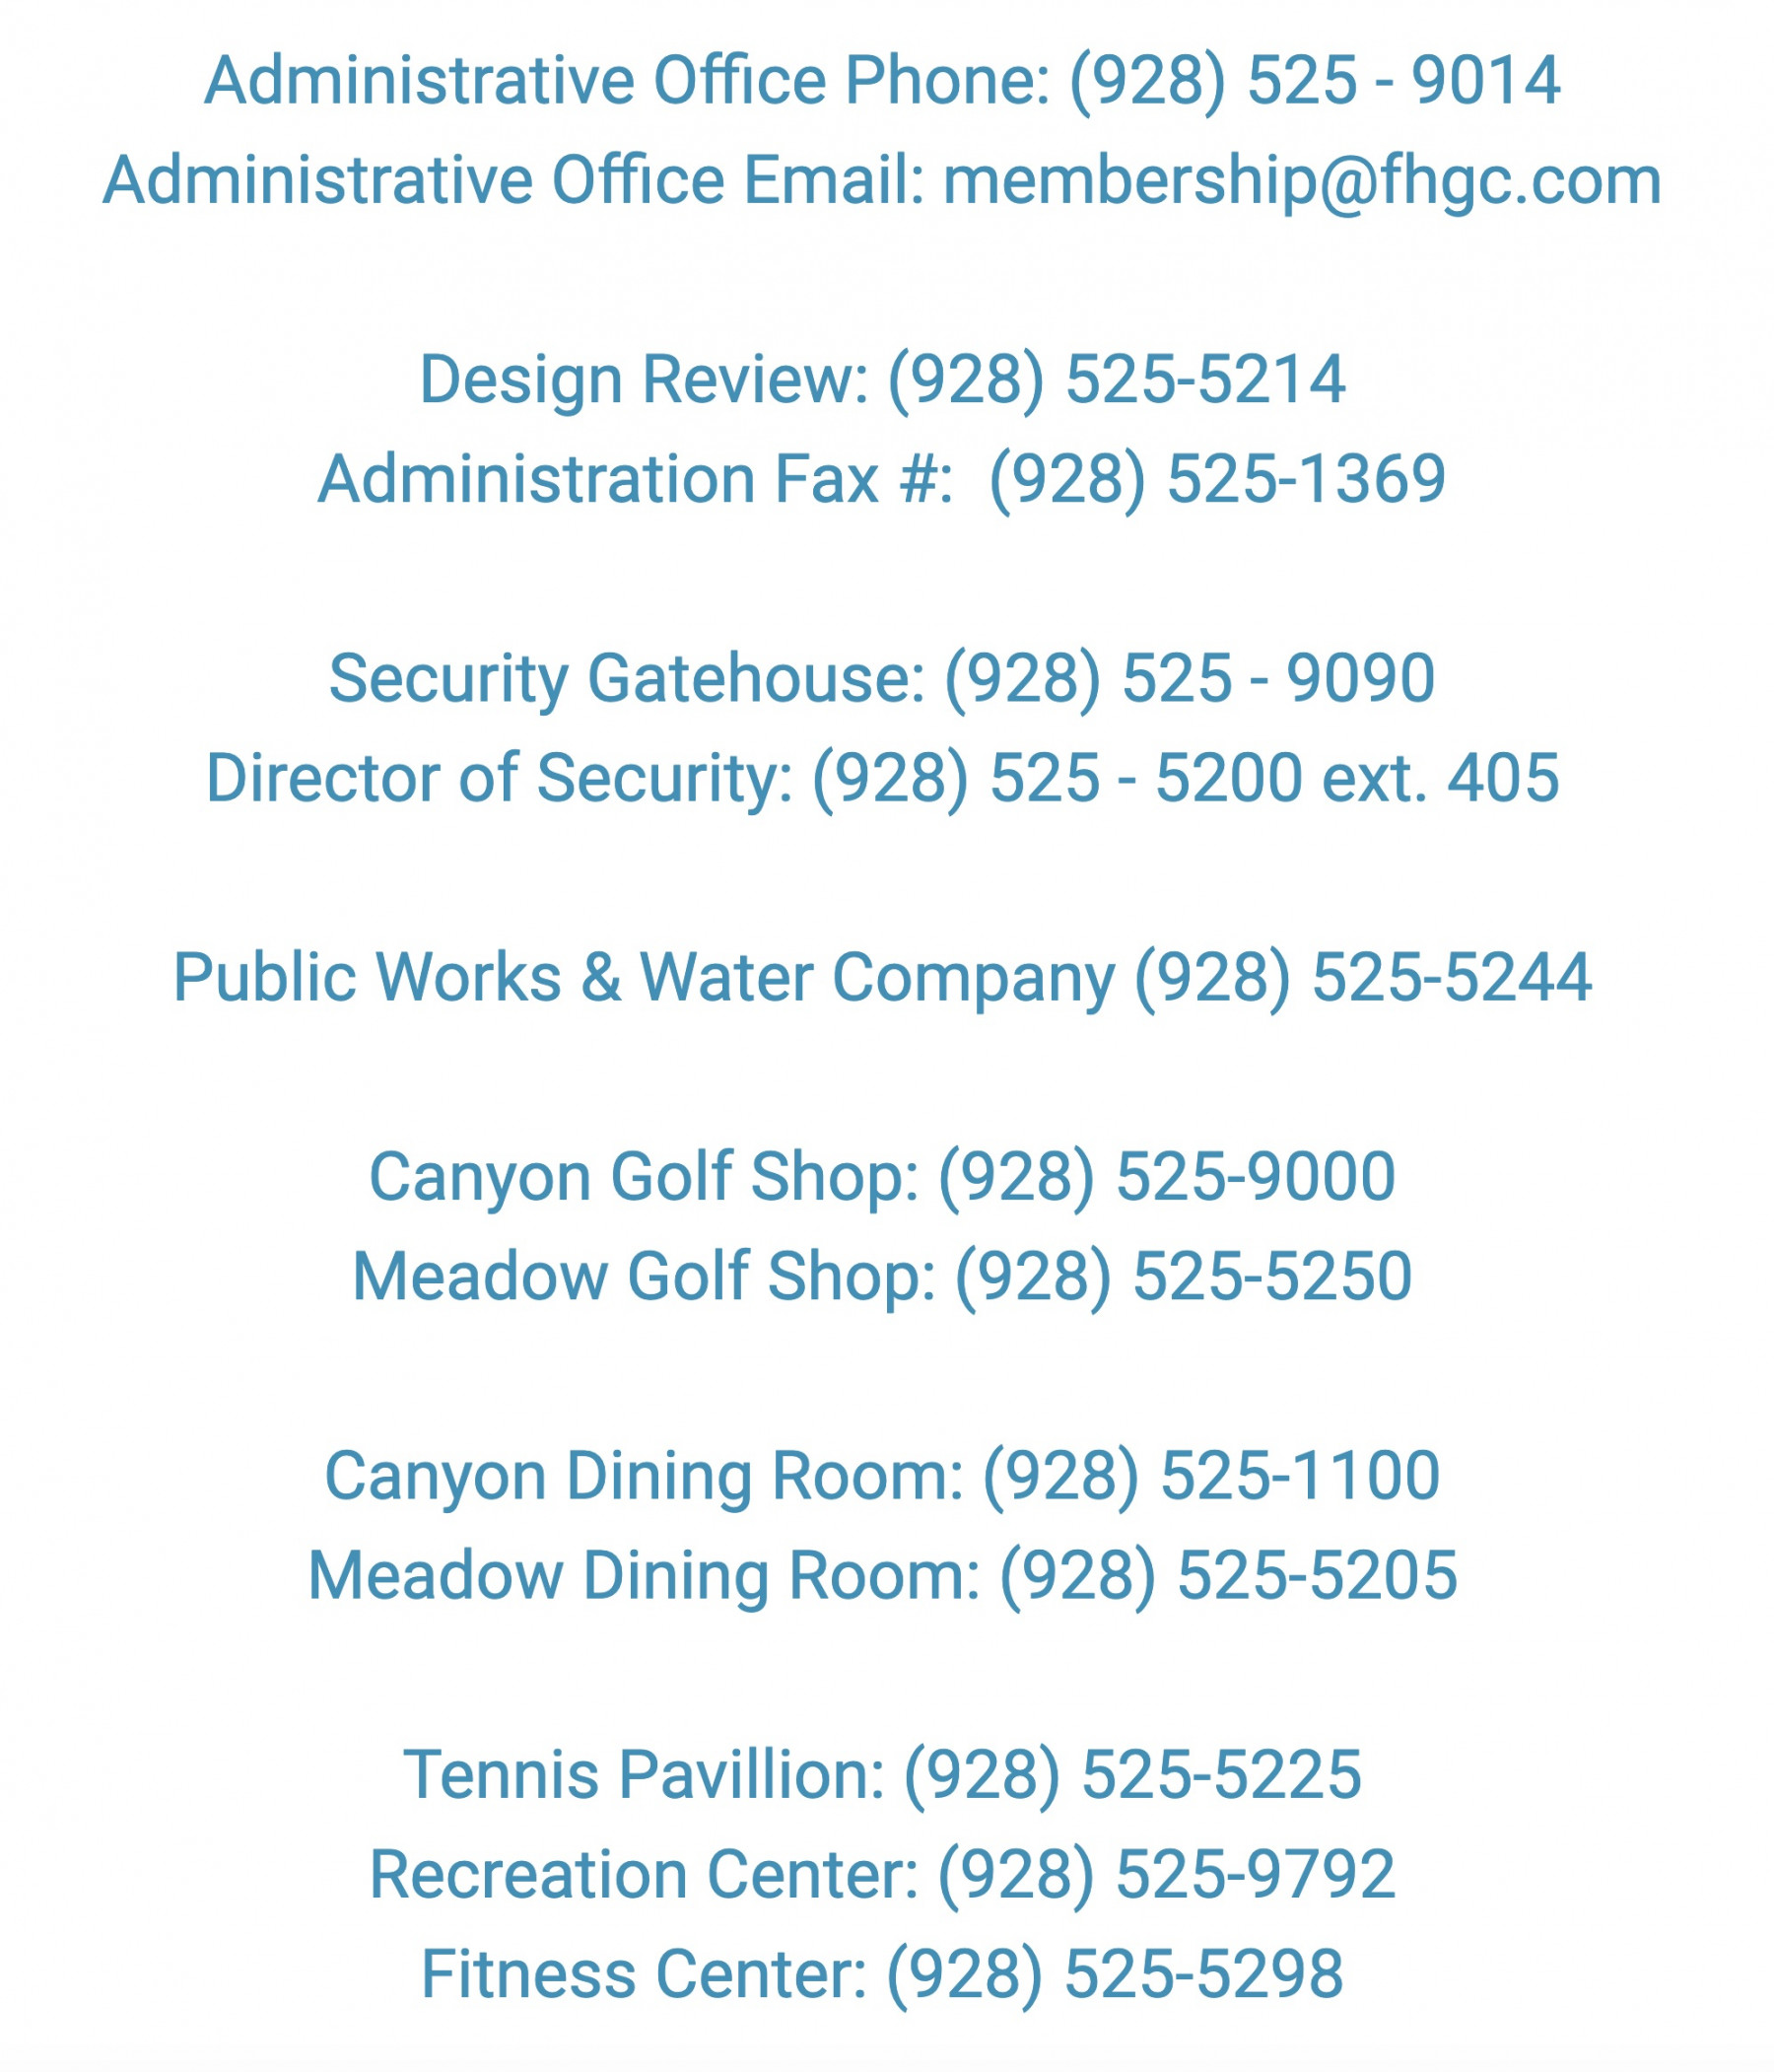 Forest_Highlands_Golf_Club_-_Contact_List_Phone